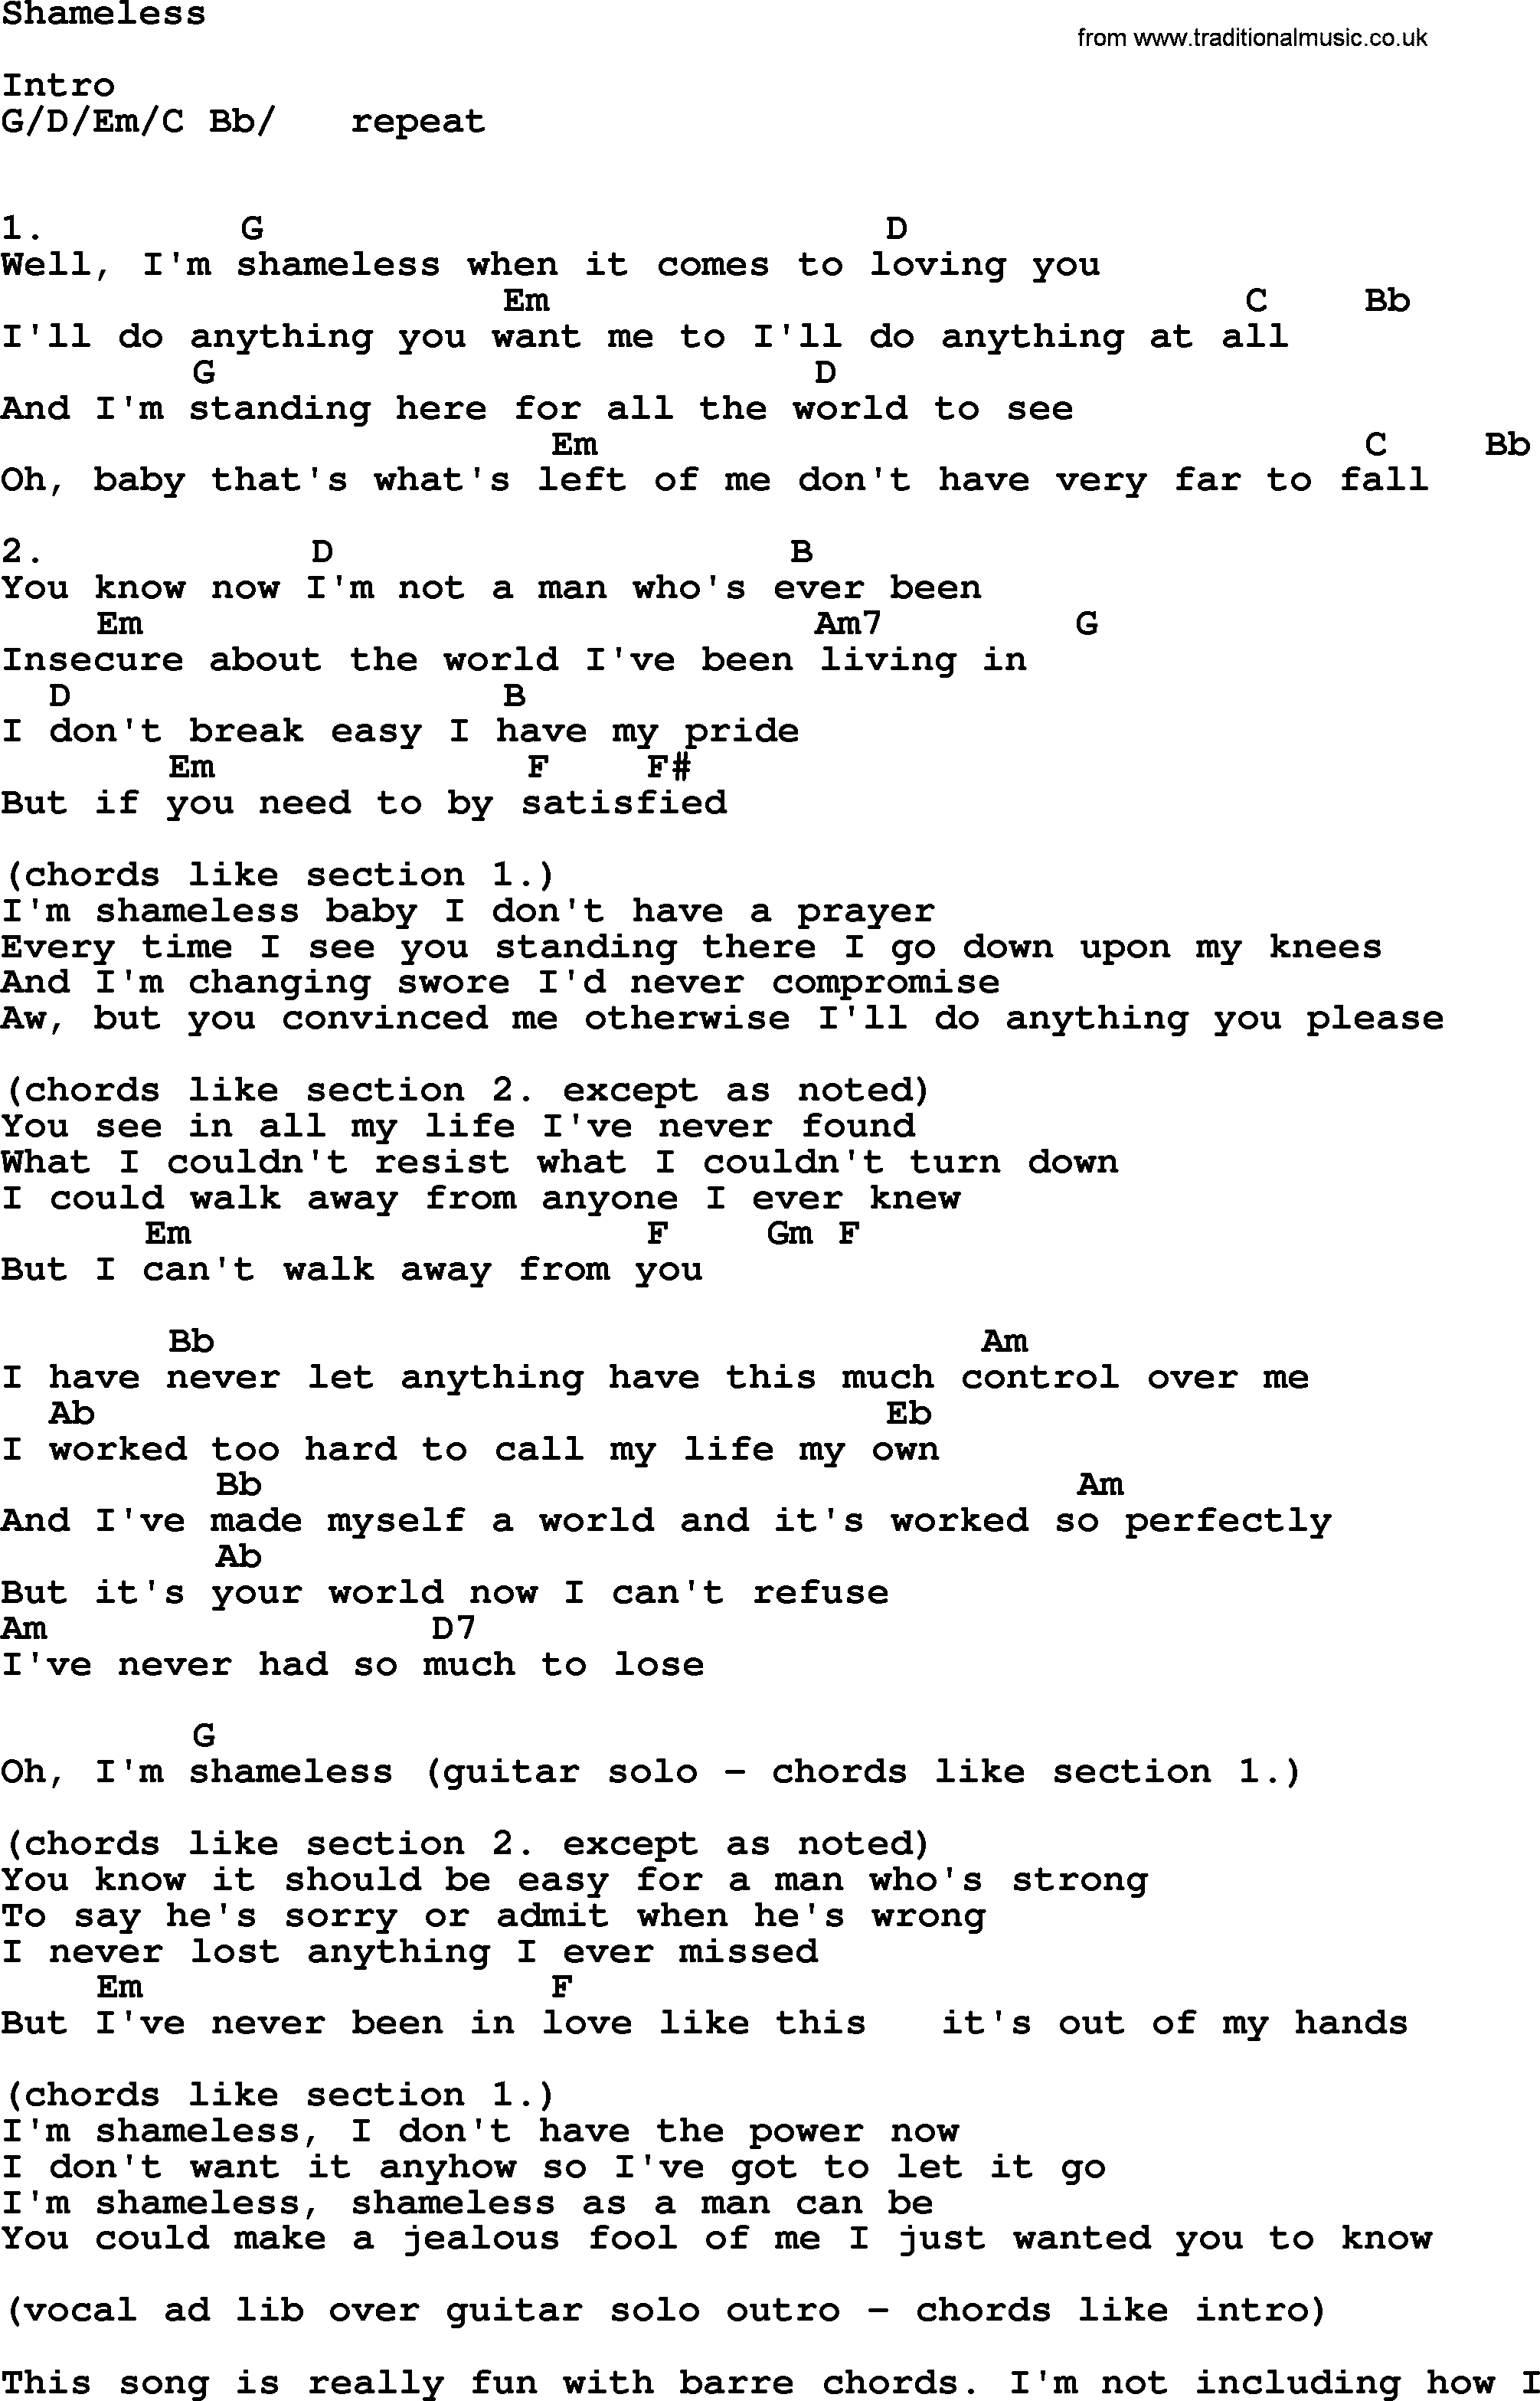 Tabs Shameless Lyrics And Chords Lyrics And Chords Guitar